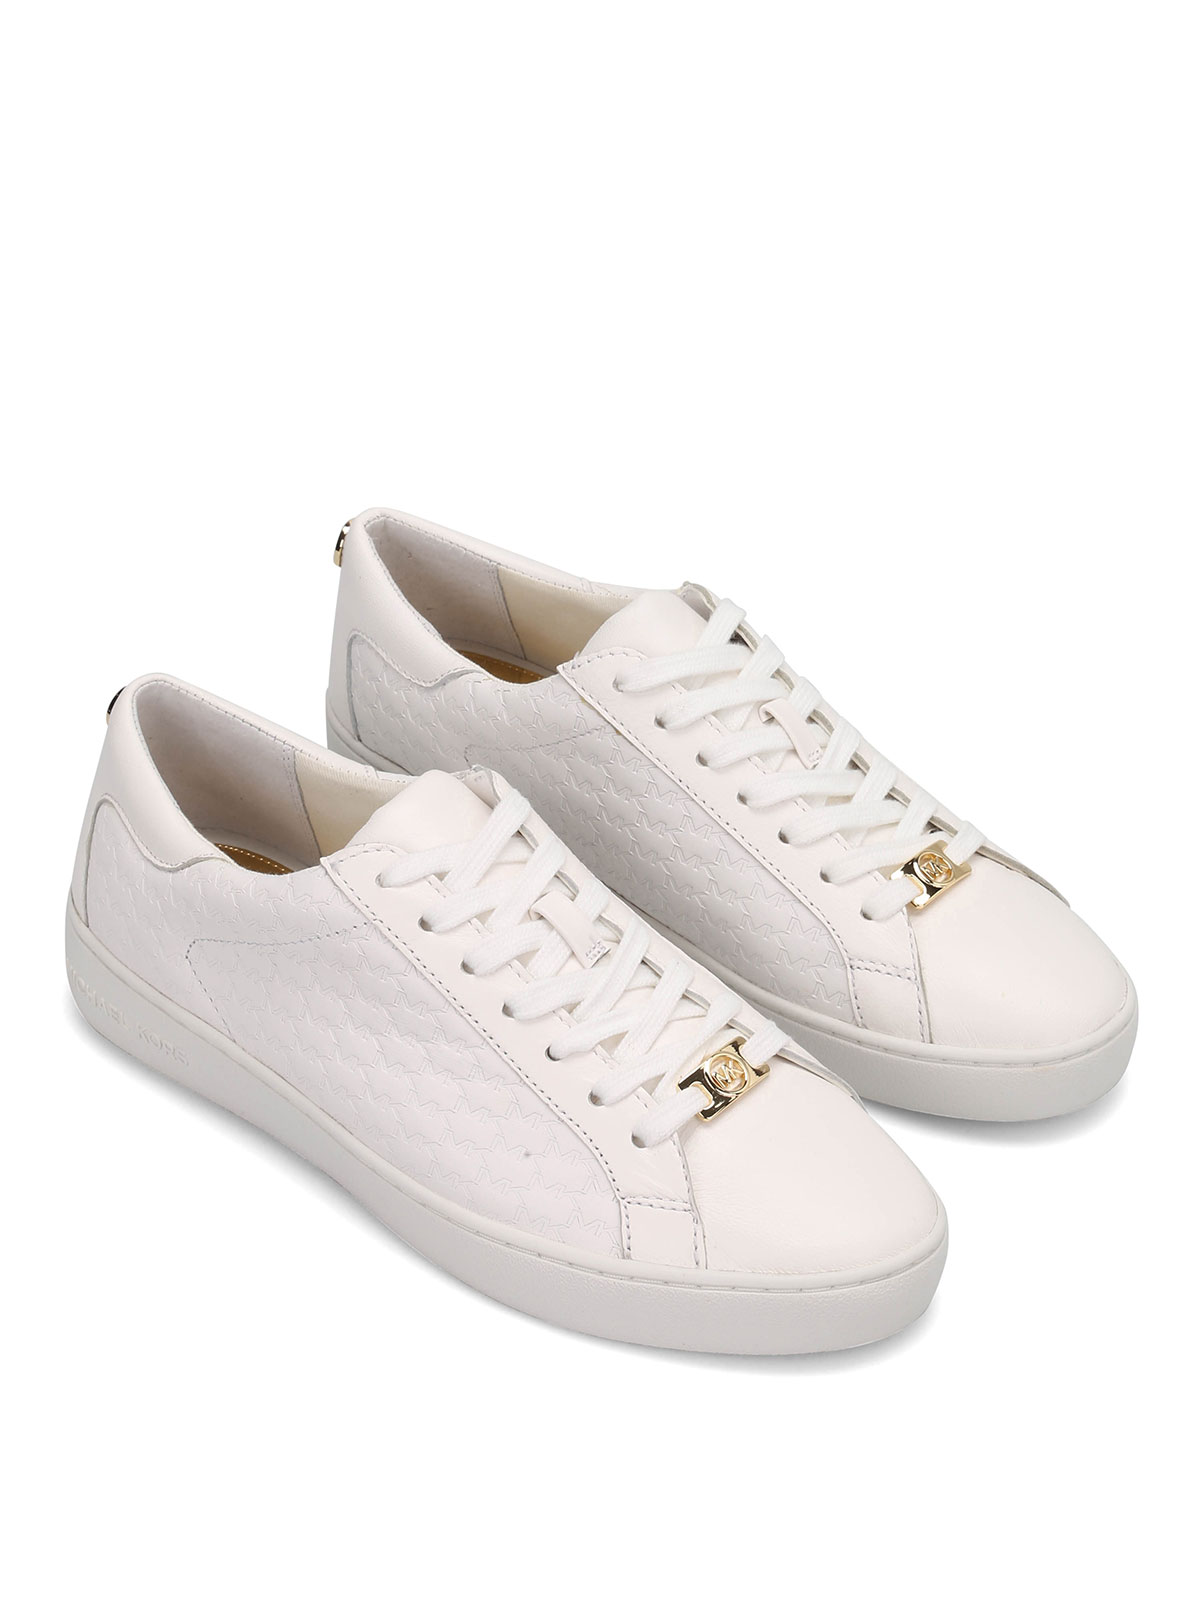 klippbok Medvetslös Snarare  Michael Kors - Colby leather sneakers - trainers - 43R5COFP2L085